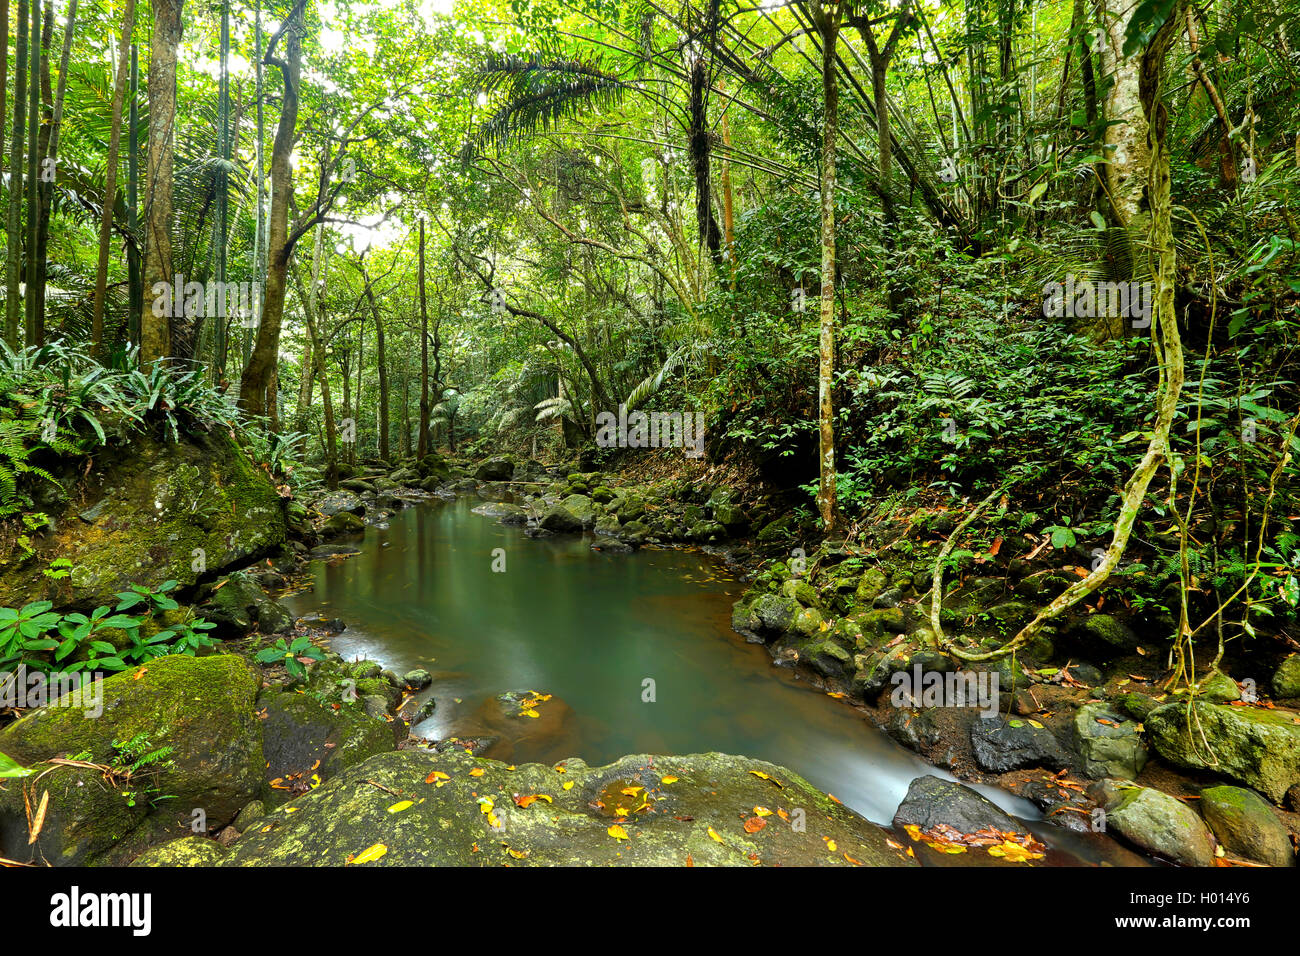 creek in tropical forest, Philippines Stock Photo - Alamy